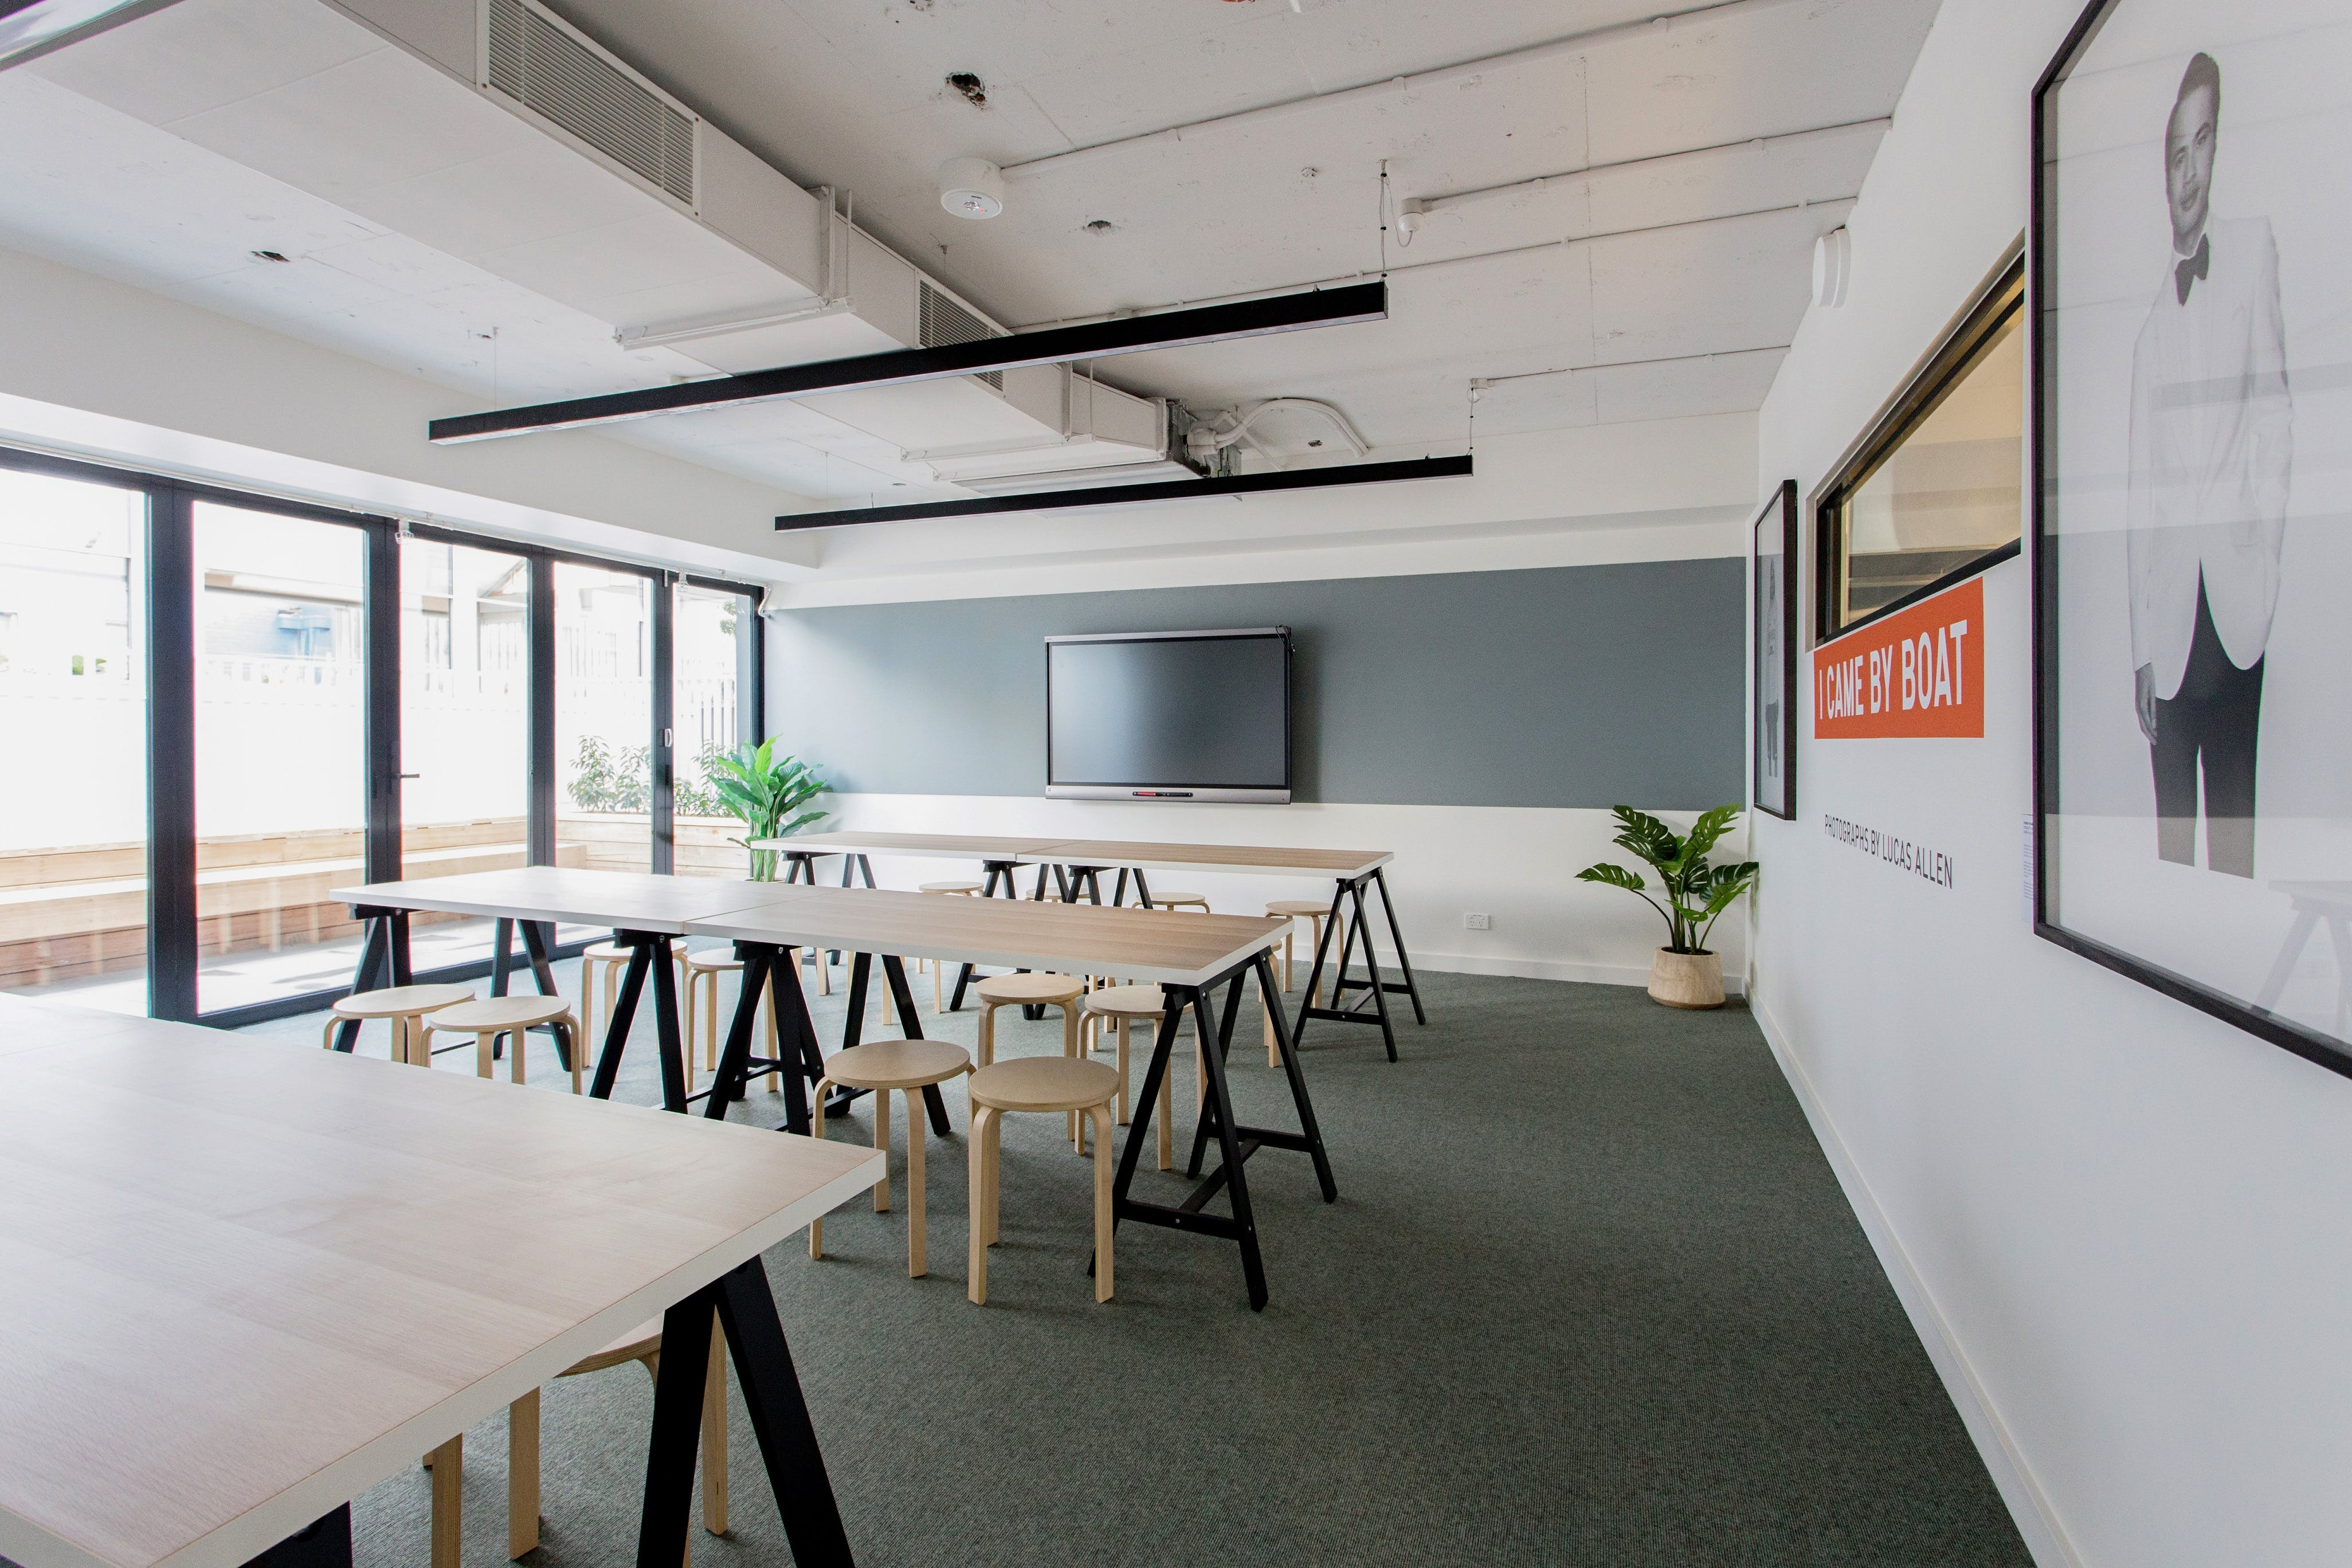 The Learning Hub, training room at Carman's Space, image 1